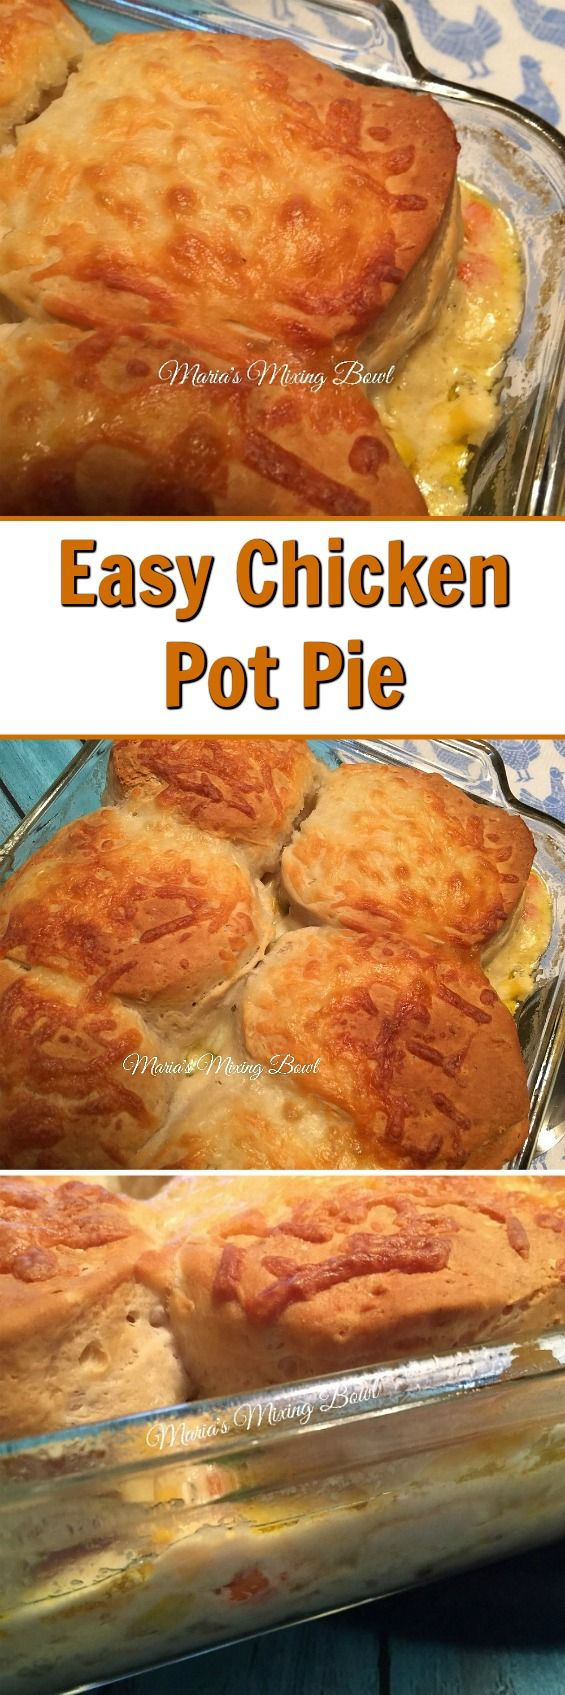 Easy Chicken Pot Pie - This creamy, delicious family meal is quick and easy and perfect for busy weeknights! #easy #chicken #pie